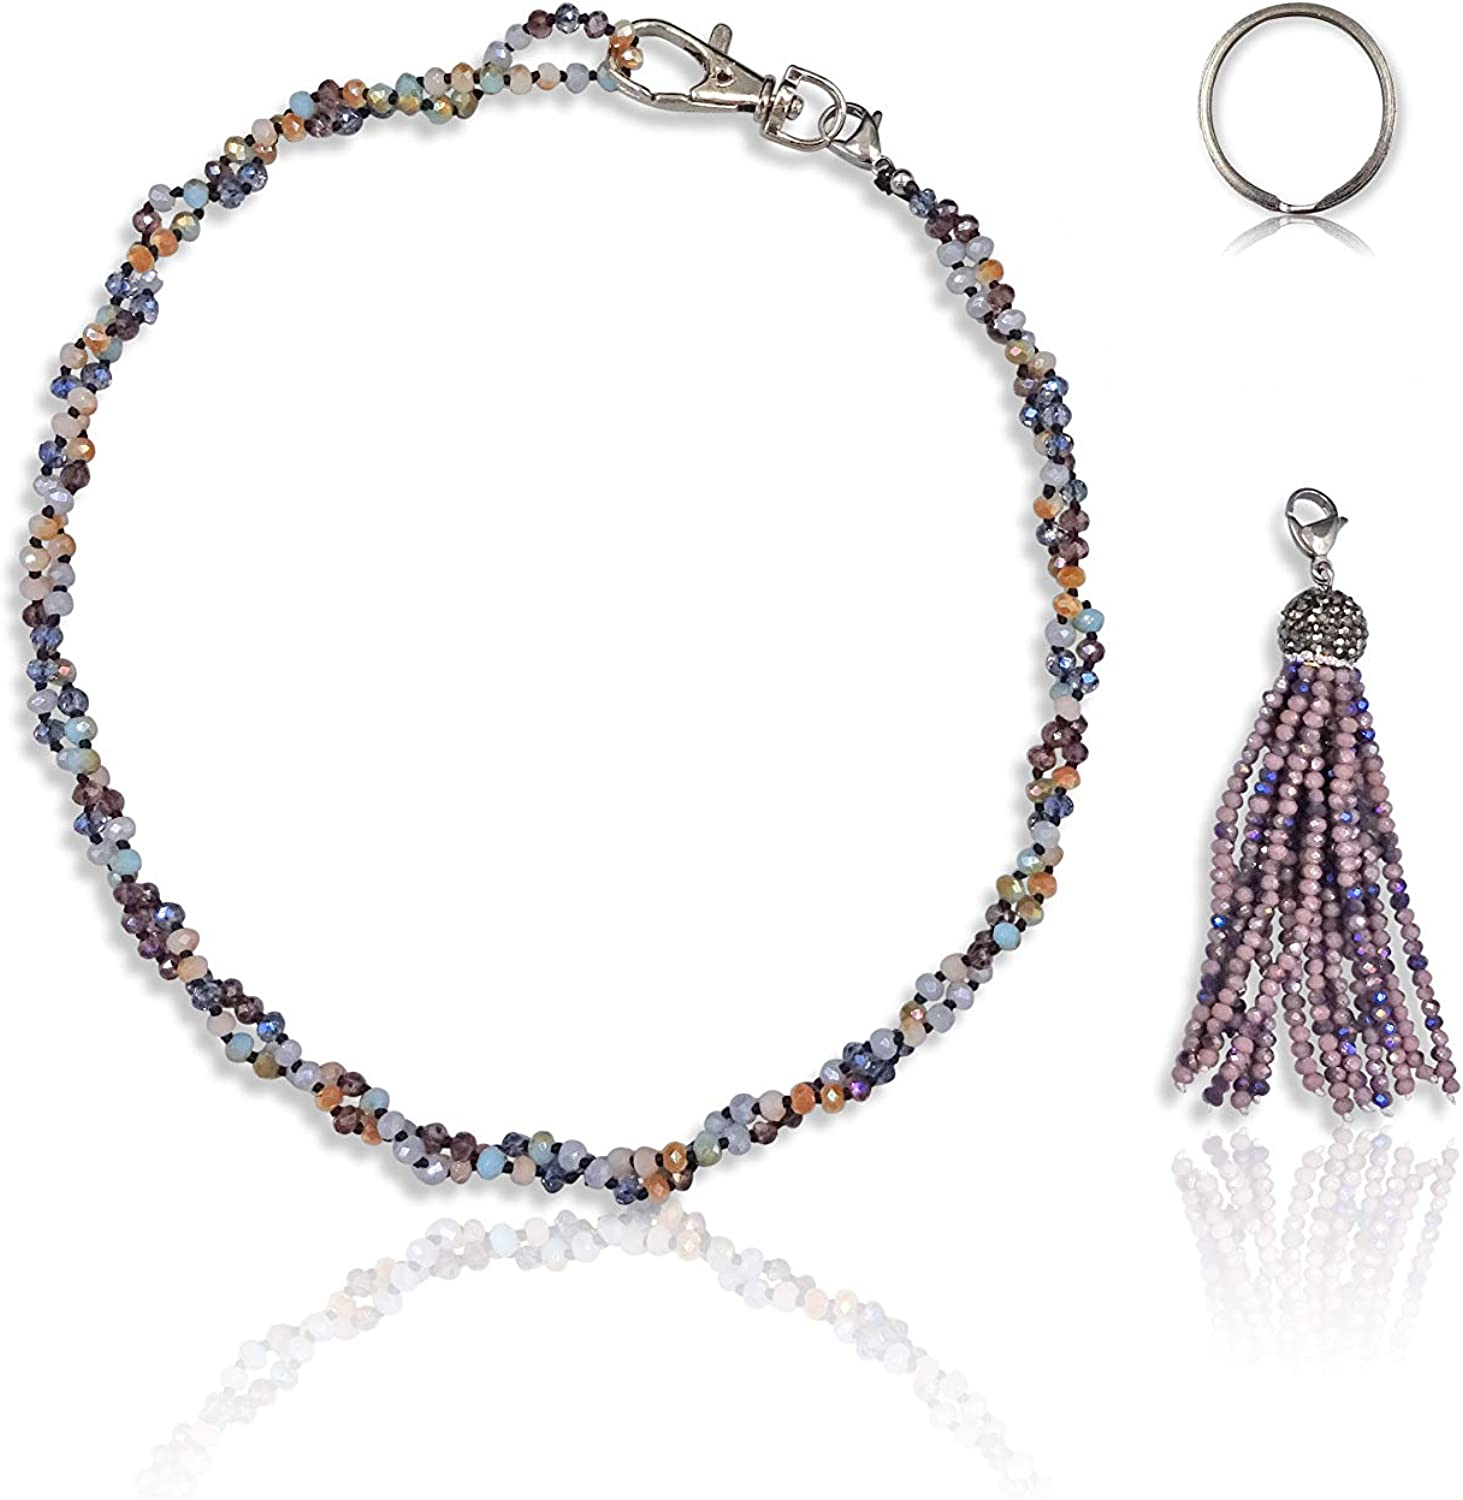 MGR MY GEMS ROCK! Beaded Crystal or Gem Stone Light Weight Non-Breakaway Lanyard Necklace and ID Badge Holder Necklace for Women.